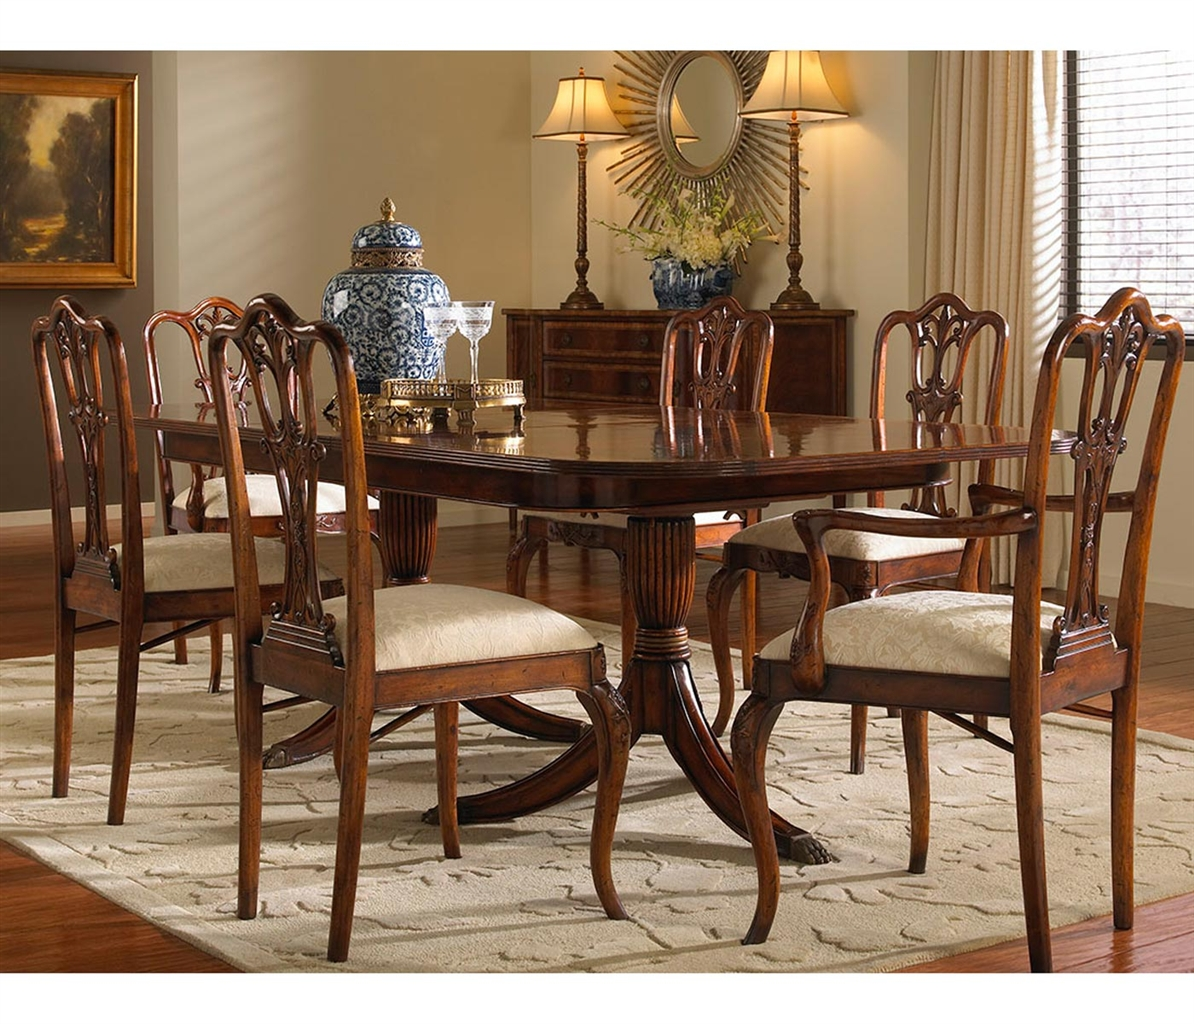 dining tables extending dining table furniture self storing leaf - Extending Dining Table And Chairs